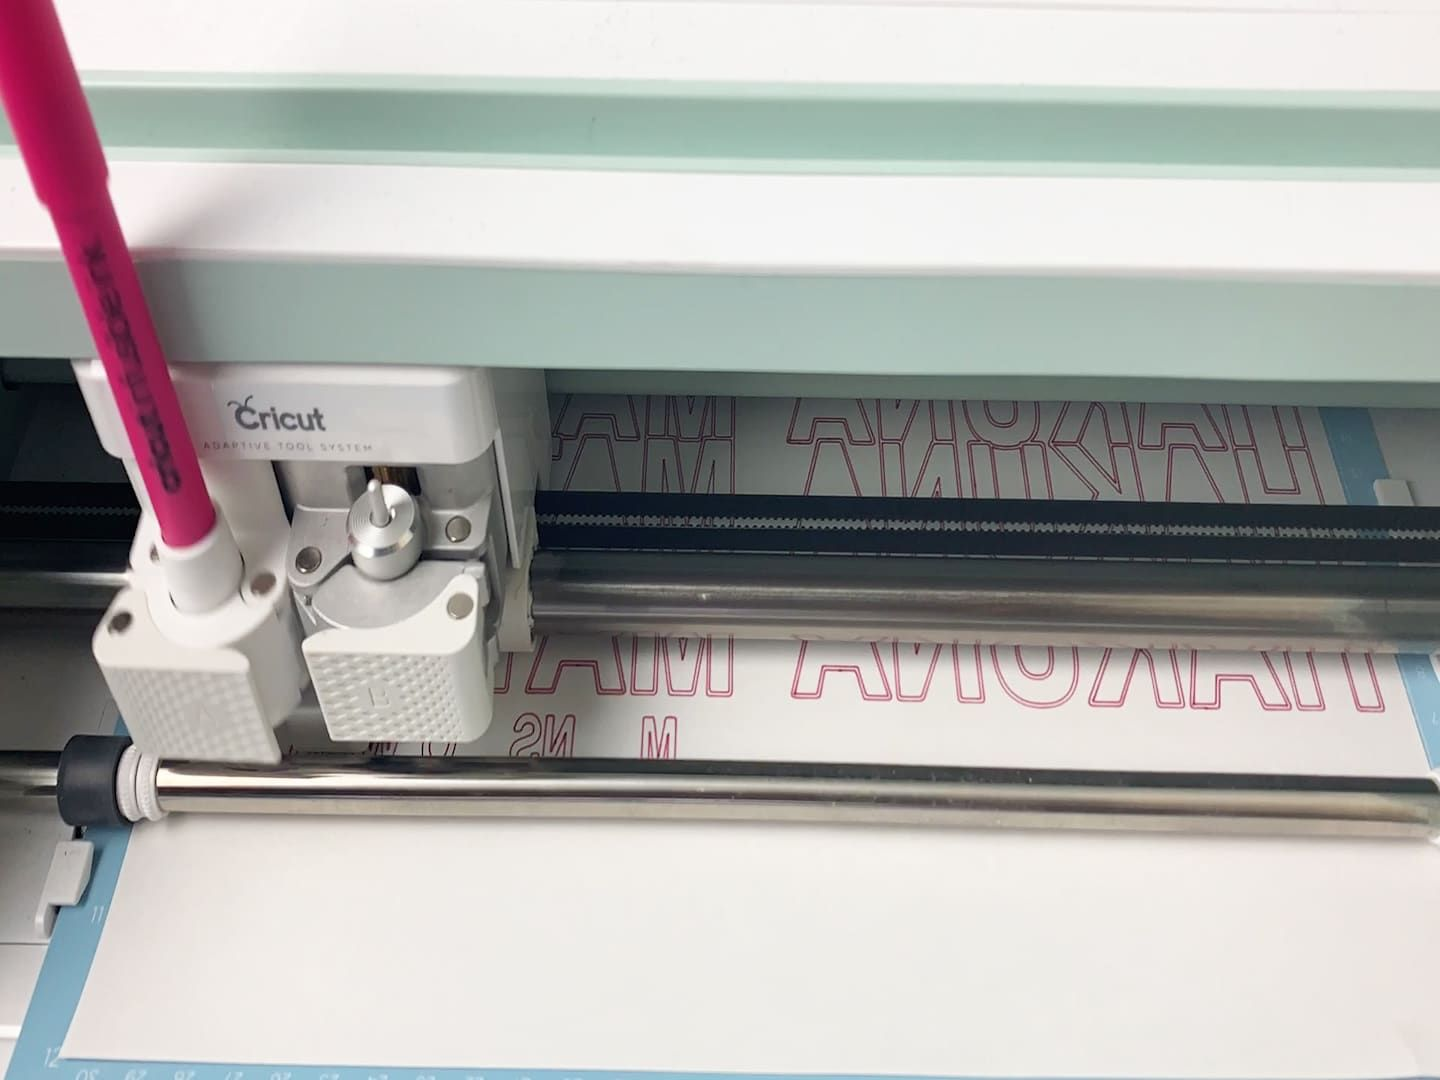 Pin on Cricut Crafts, Tutorials and More!